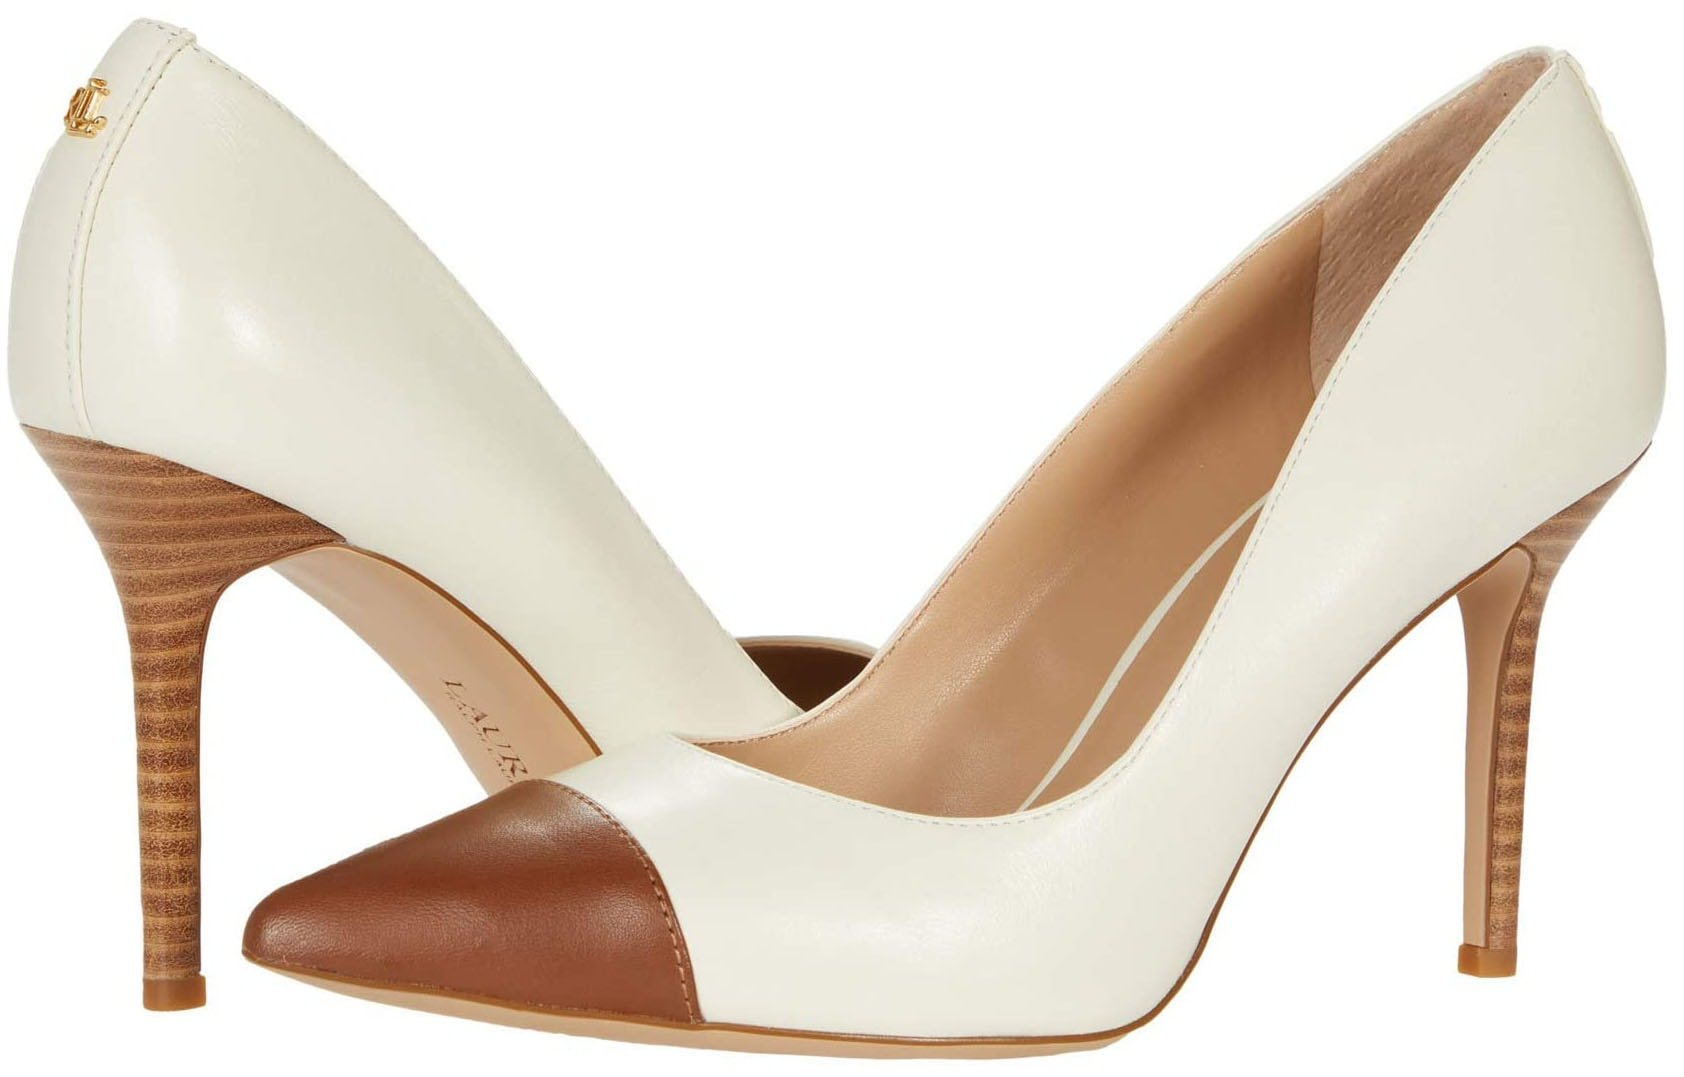 These classic Lindella pumps are finished with contrasting cap toes for a modern look